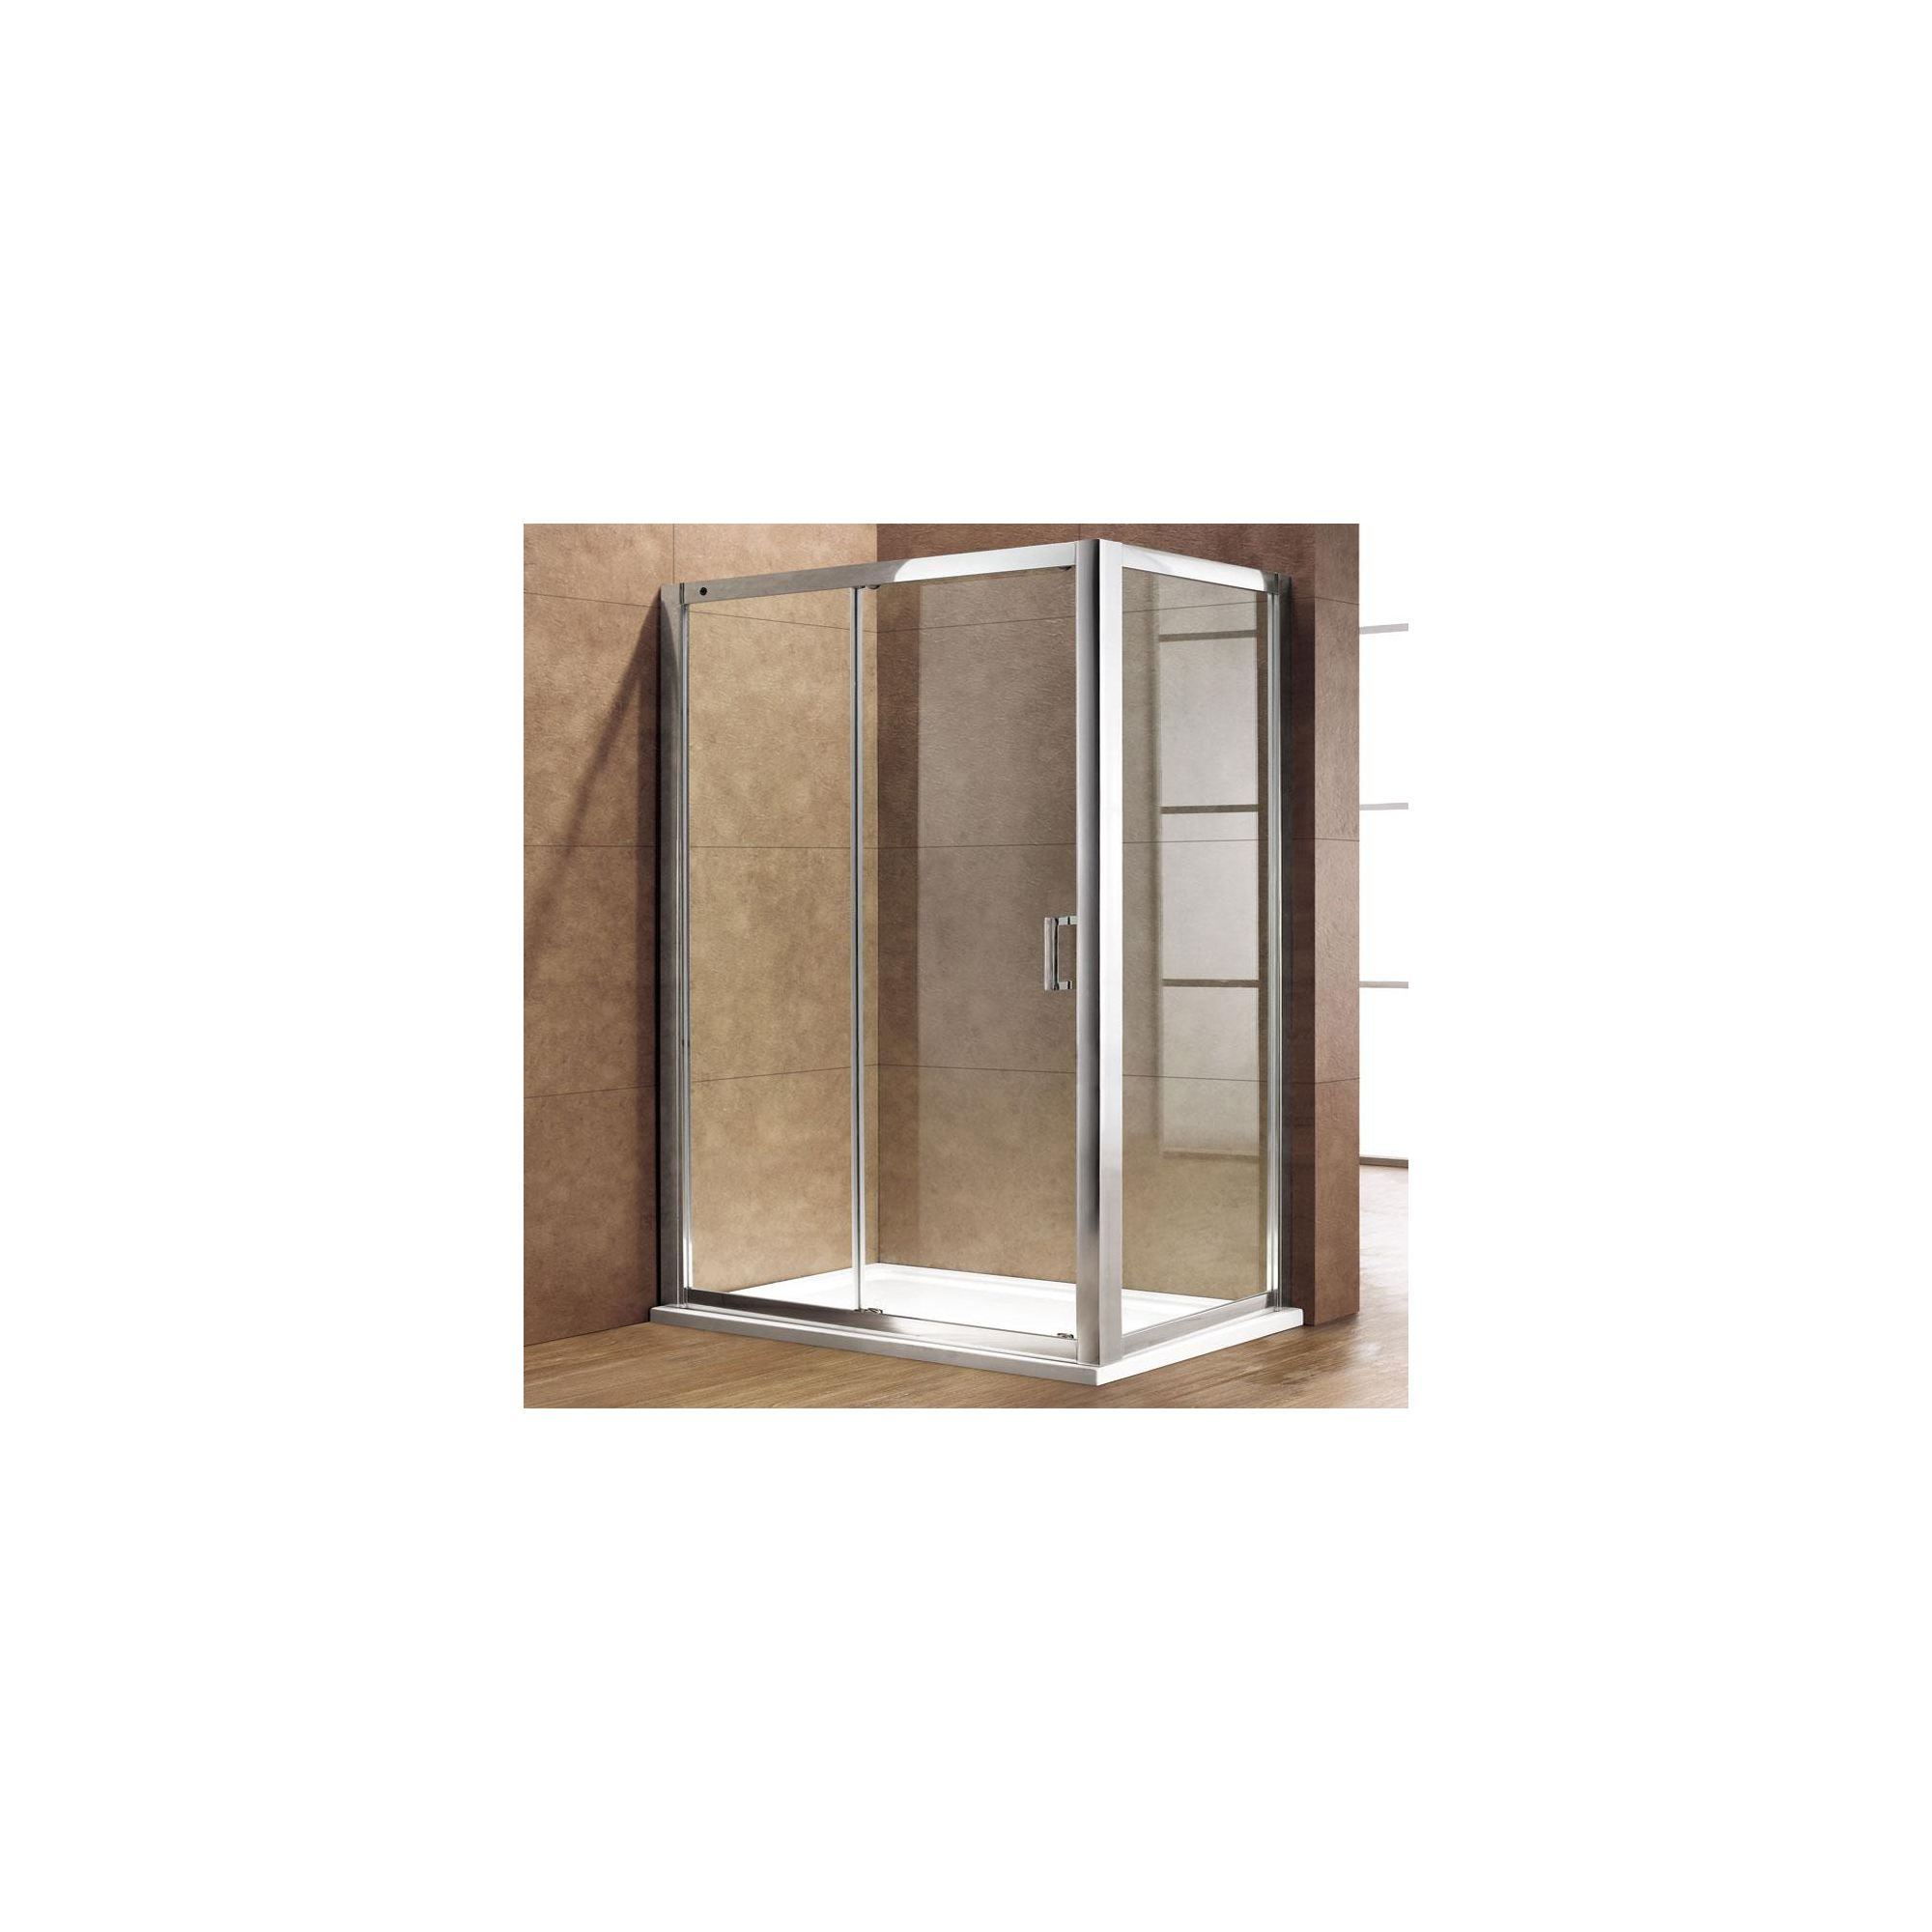 Duchy Premium Single Sliding Door Shower Enclosure, 1700mm x 900mm, 8mm Glass, Low Profile Tray at Tesco Direct